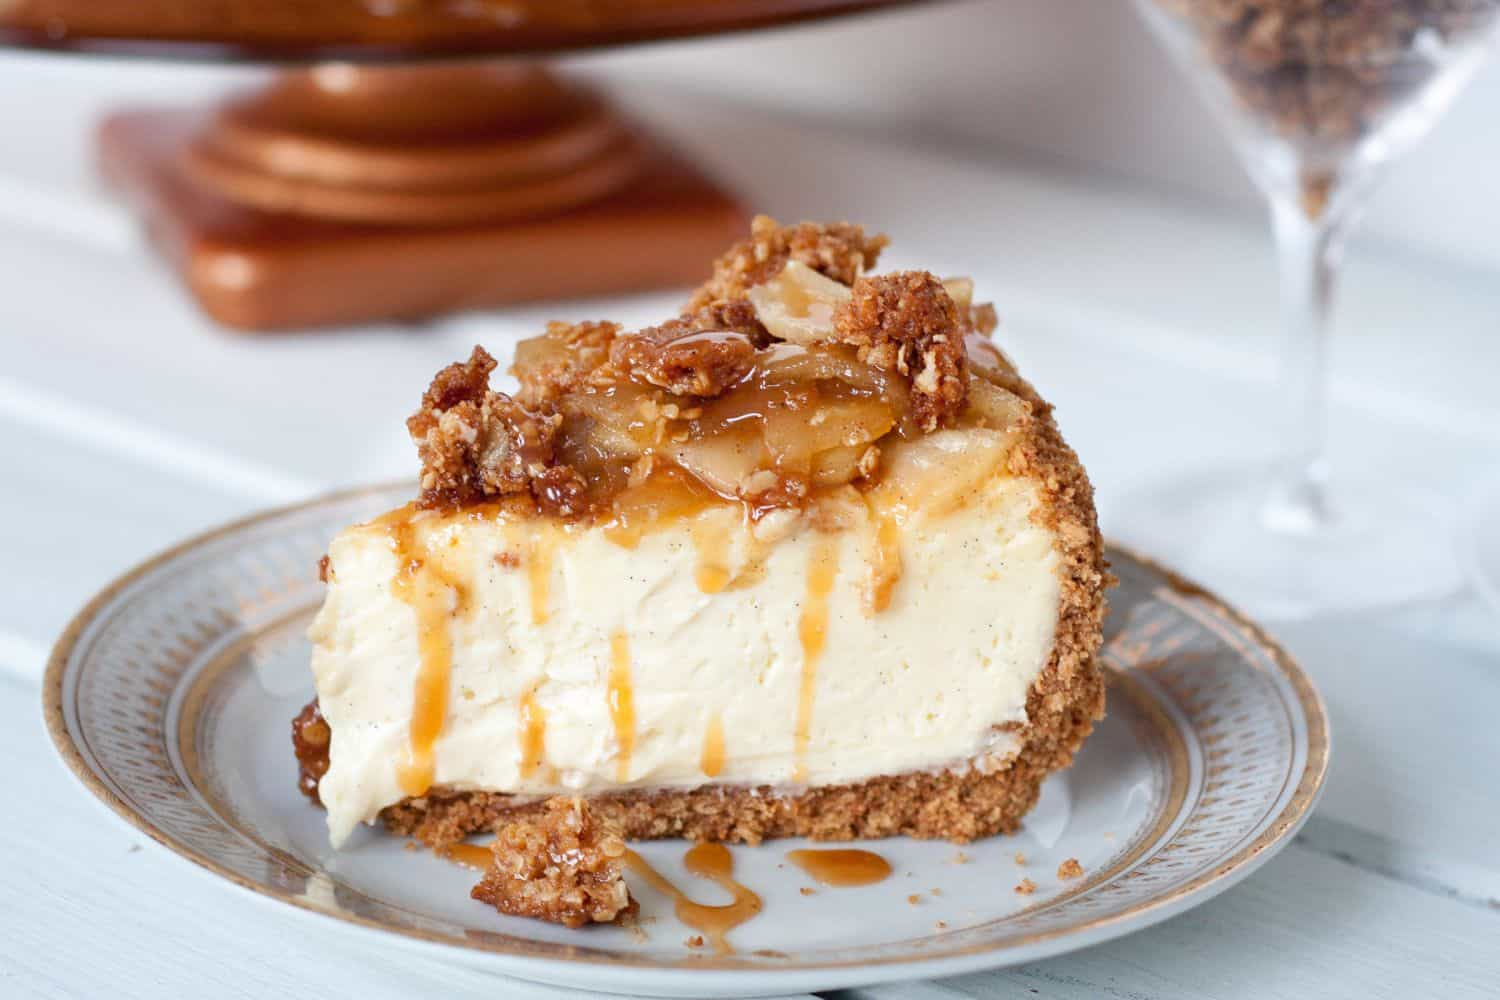 Caramel Apple Cheesecake - A creamy vanilla bean cheesecake on a cinnamon graham crust topped with a homemade apple pie filling, a crunchy streusel topping, and liberally drizzled with caramel sauce! Get the recipe on GoodieGodmother.com